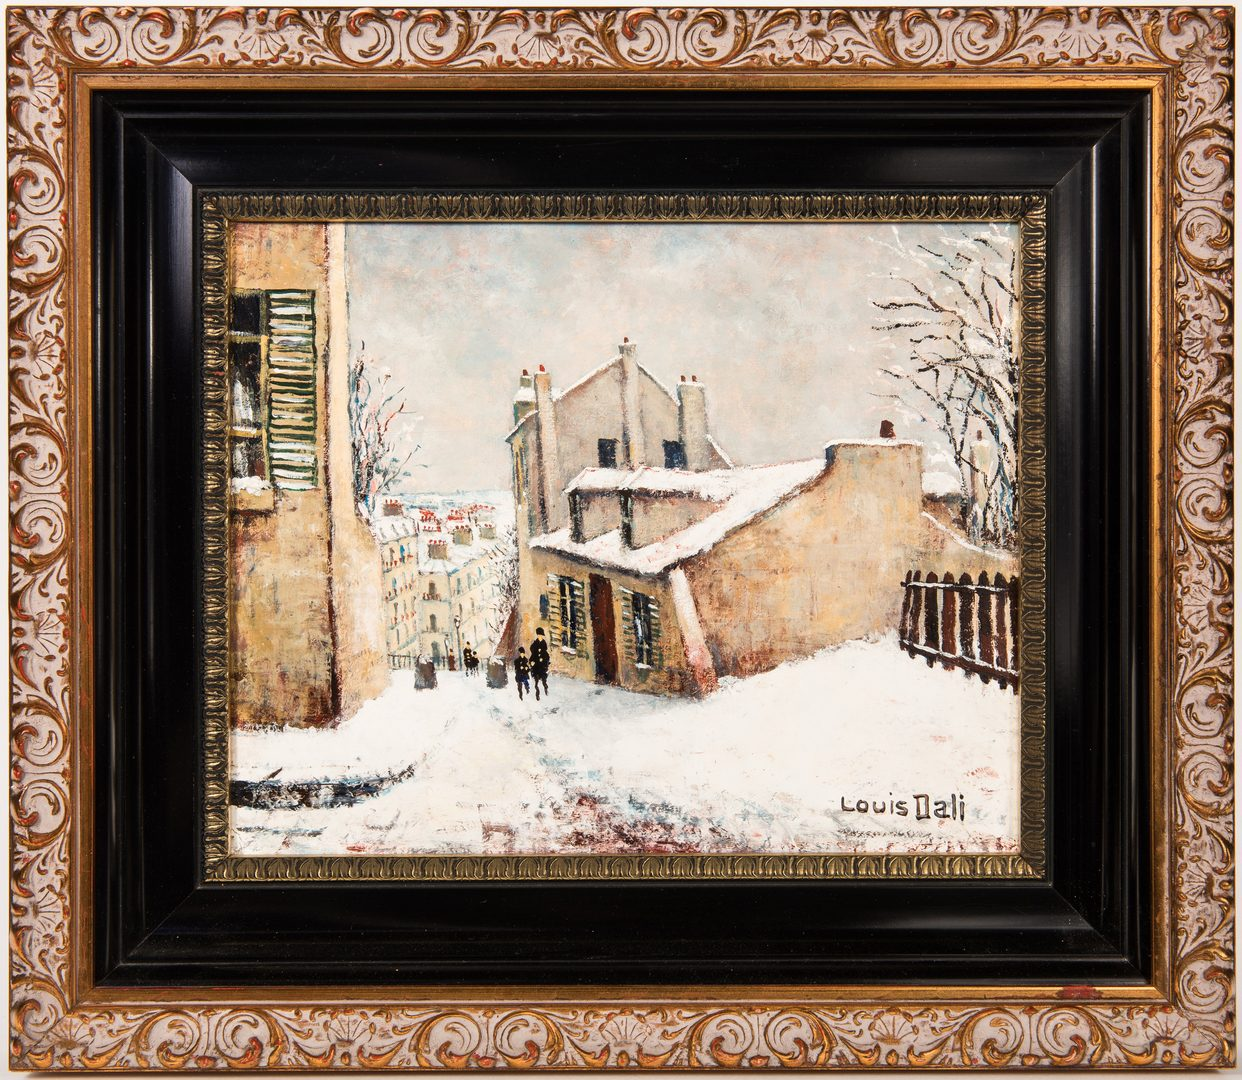 Lot 770: Louis Dali, O/C, Parisian Winter Street Scene